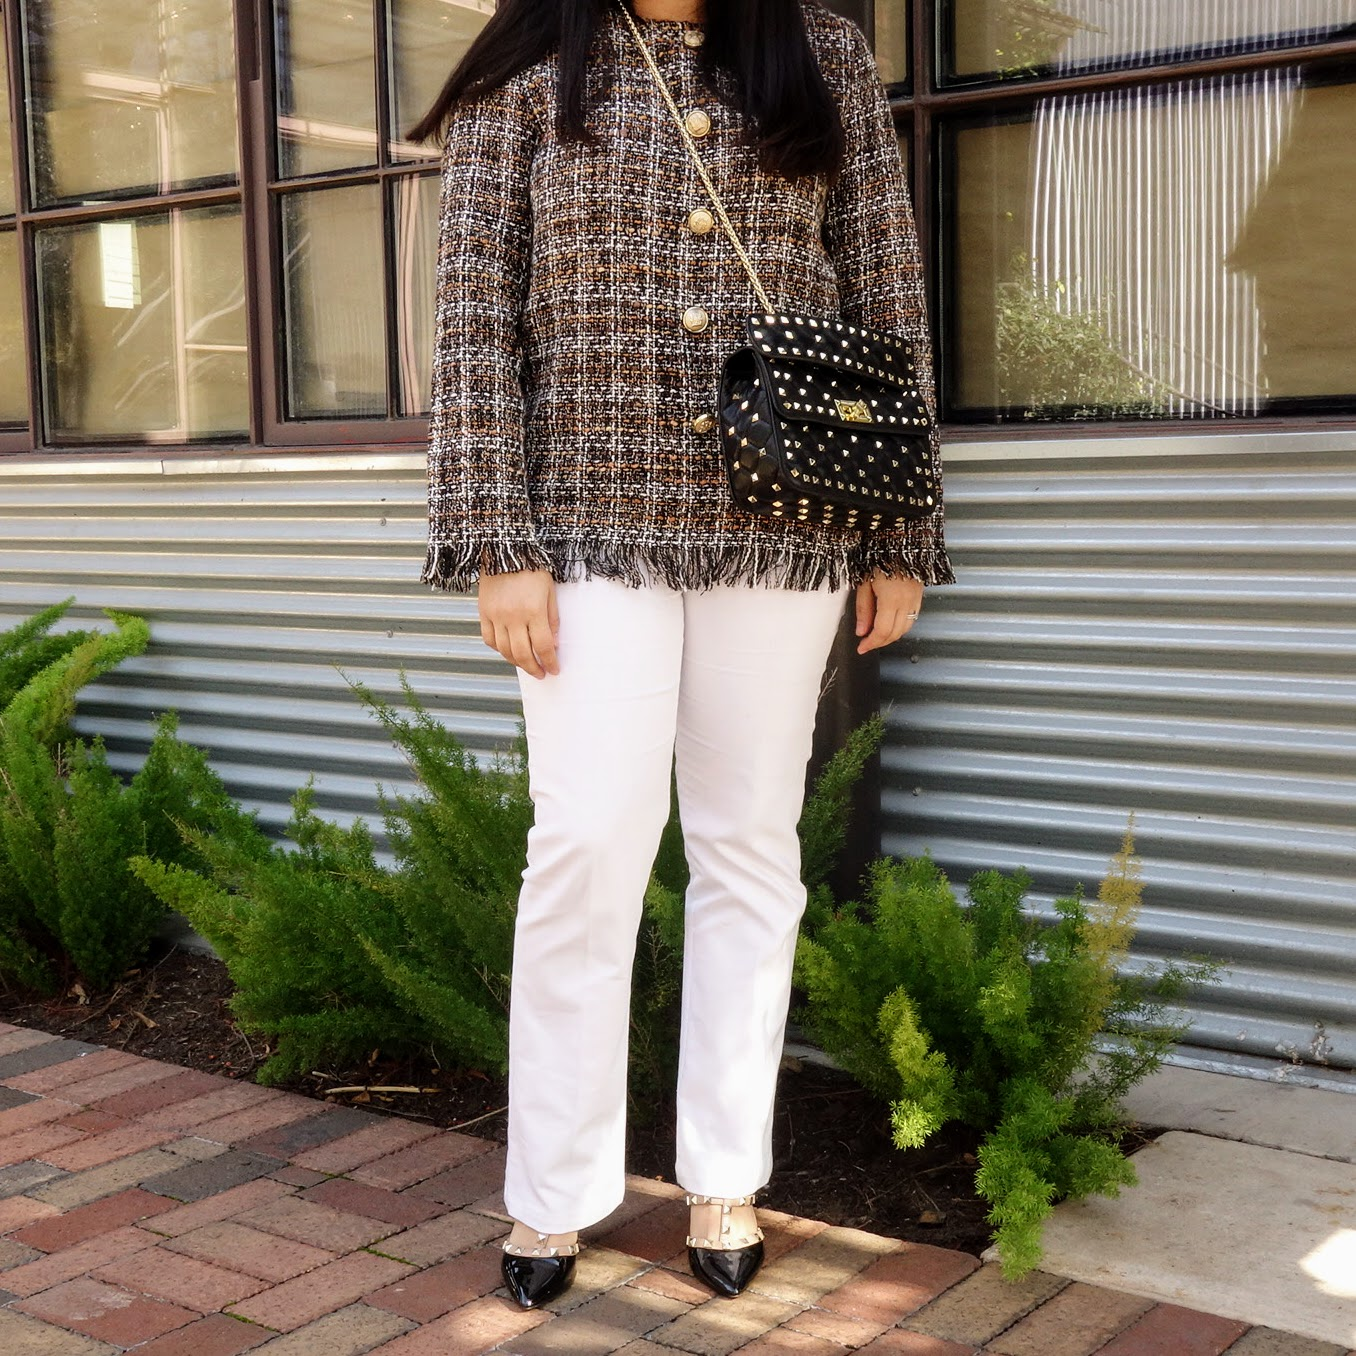 Tweed Jacket, Tweed Jacket Outfit, Studded Bag, Studded Shoes Outfit, White Pants, Winter Outfit,